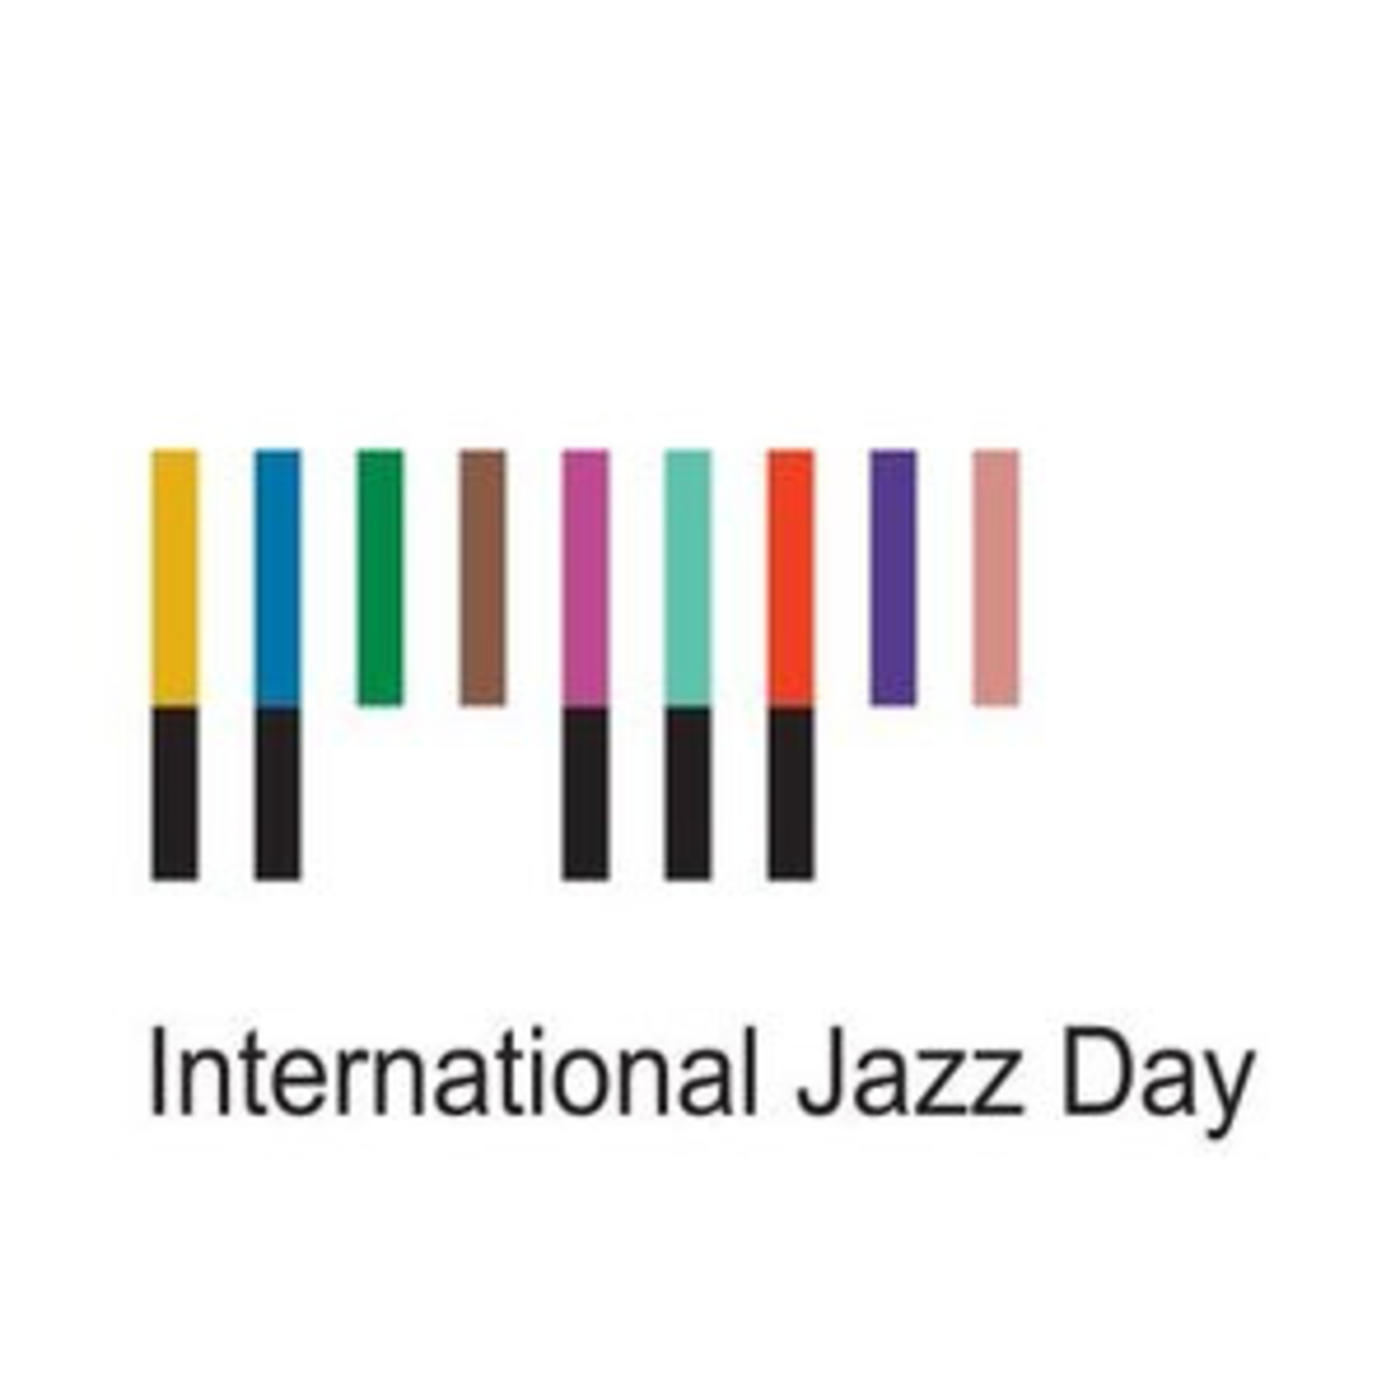 Happy International Jazz Day! featuring John Coltrane, Art Blakey, Ella, Miles, Count Basie + more!